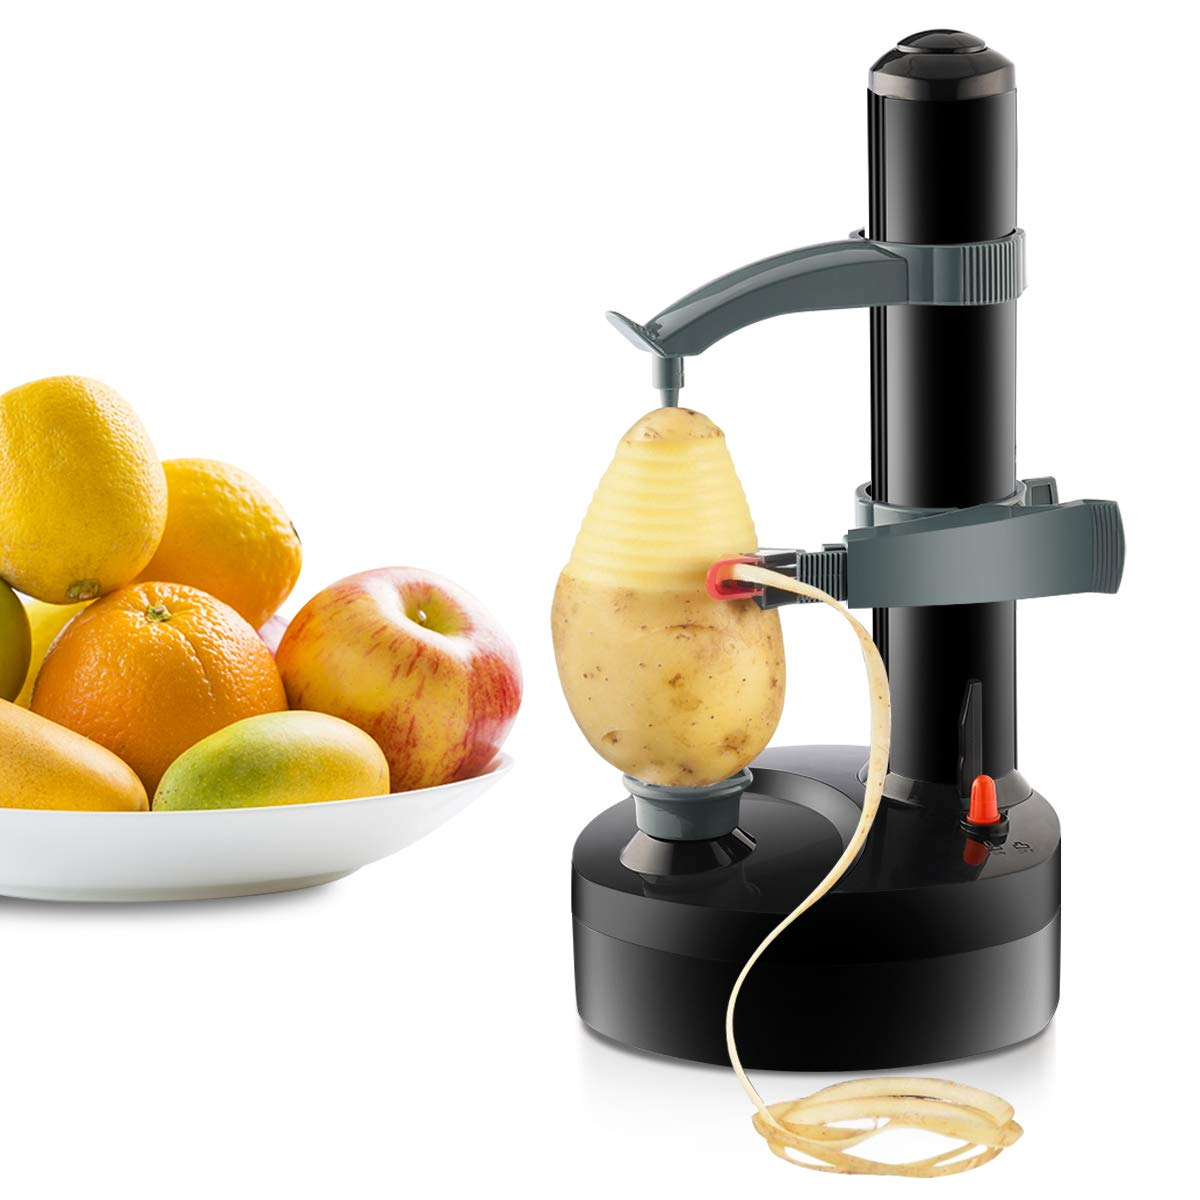 TOPCHANCES Multifunctional Automatic Stainless Steel Electric Potato Peeler Automatic Rotating Fruits Vegetables Cutter Kitchen Peeling Tool for Fruit Vegetables Battery Powered (Black) by TOPCHANCES